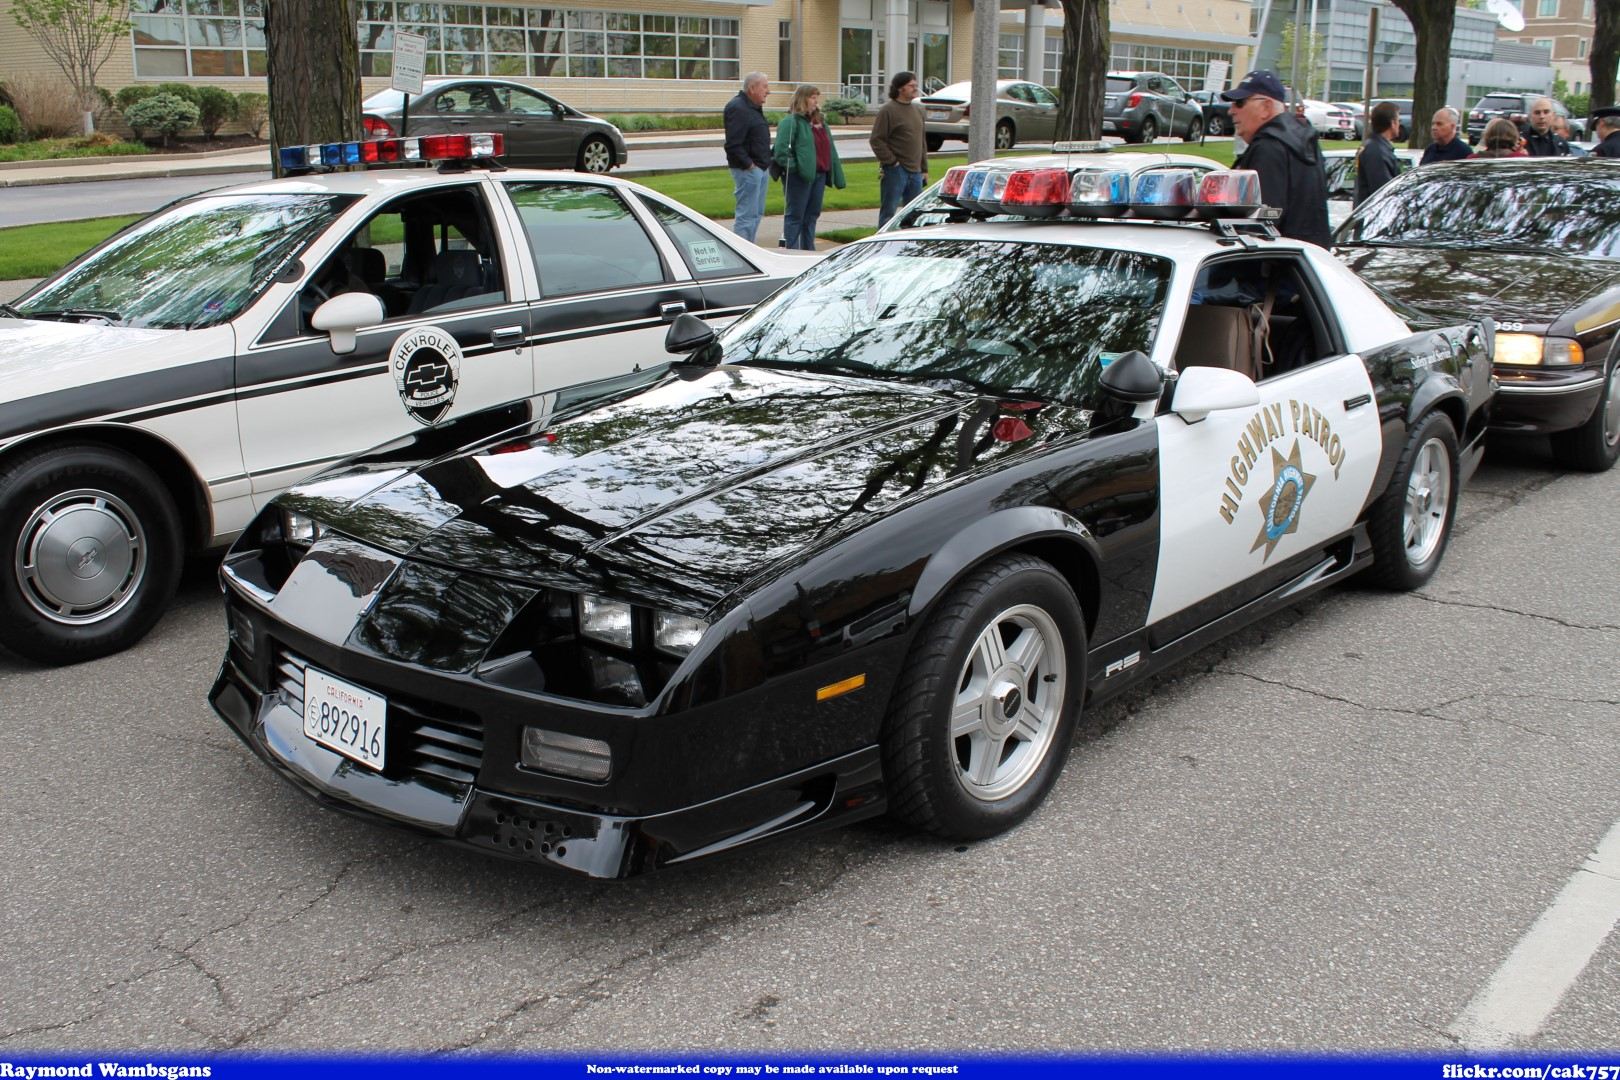 1991 chevrolet camaro with File California Highway Patrol Chevrolet Camaro on File California Highway Patrol Chevrolet Camaro further Watch moreover 20 Staggered Lexani Wheels R Twelve Black W SS Lip Rims besides Watch as well 1937 1940 Chevy Chassis.